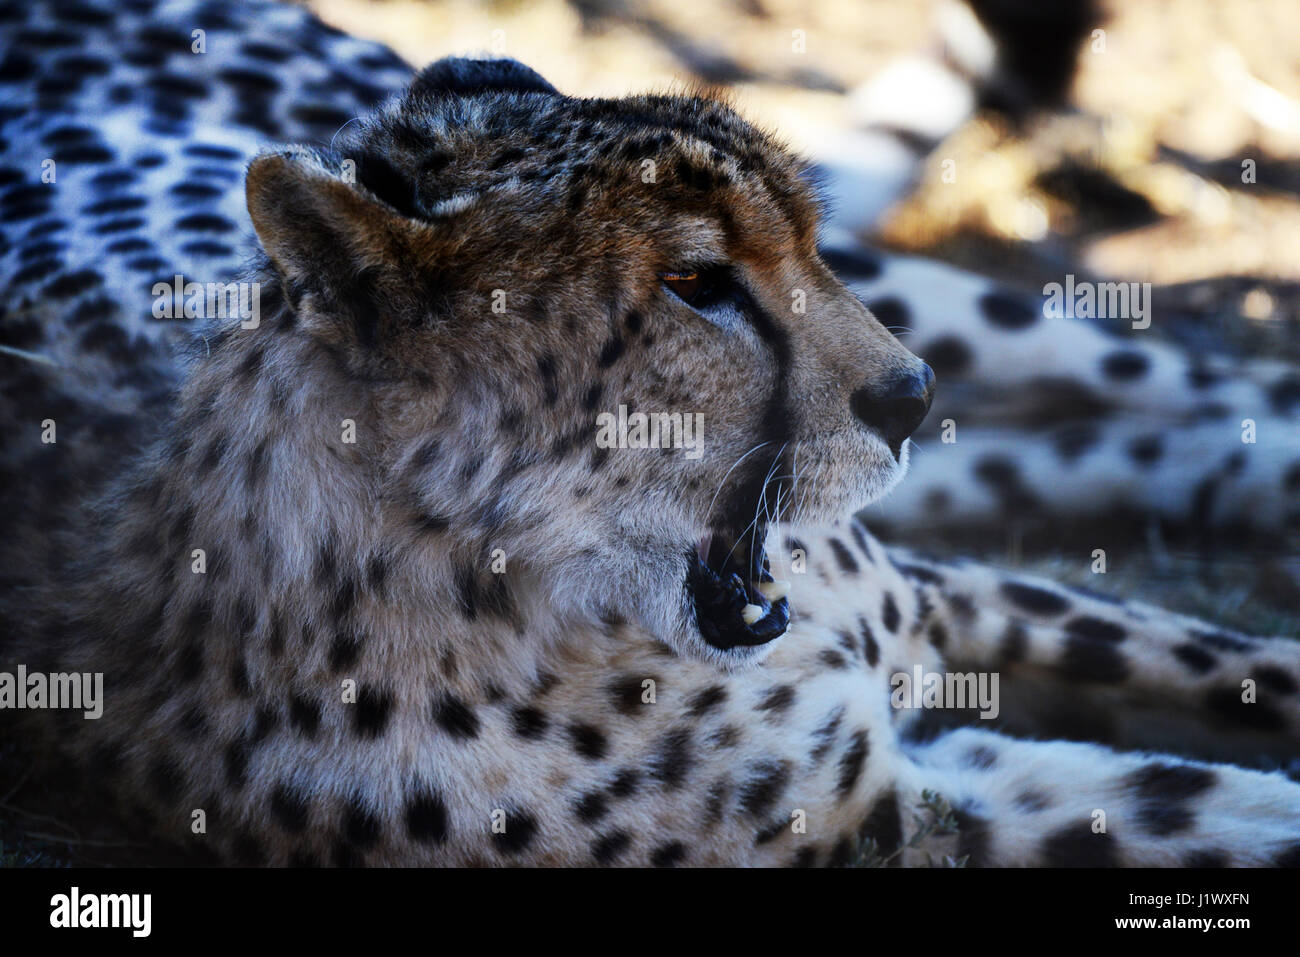 A beautiful cheetah in South Africa. - Stock Image